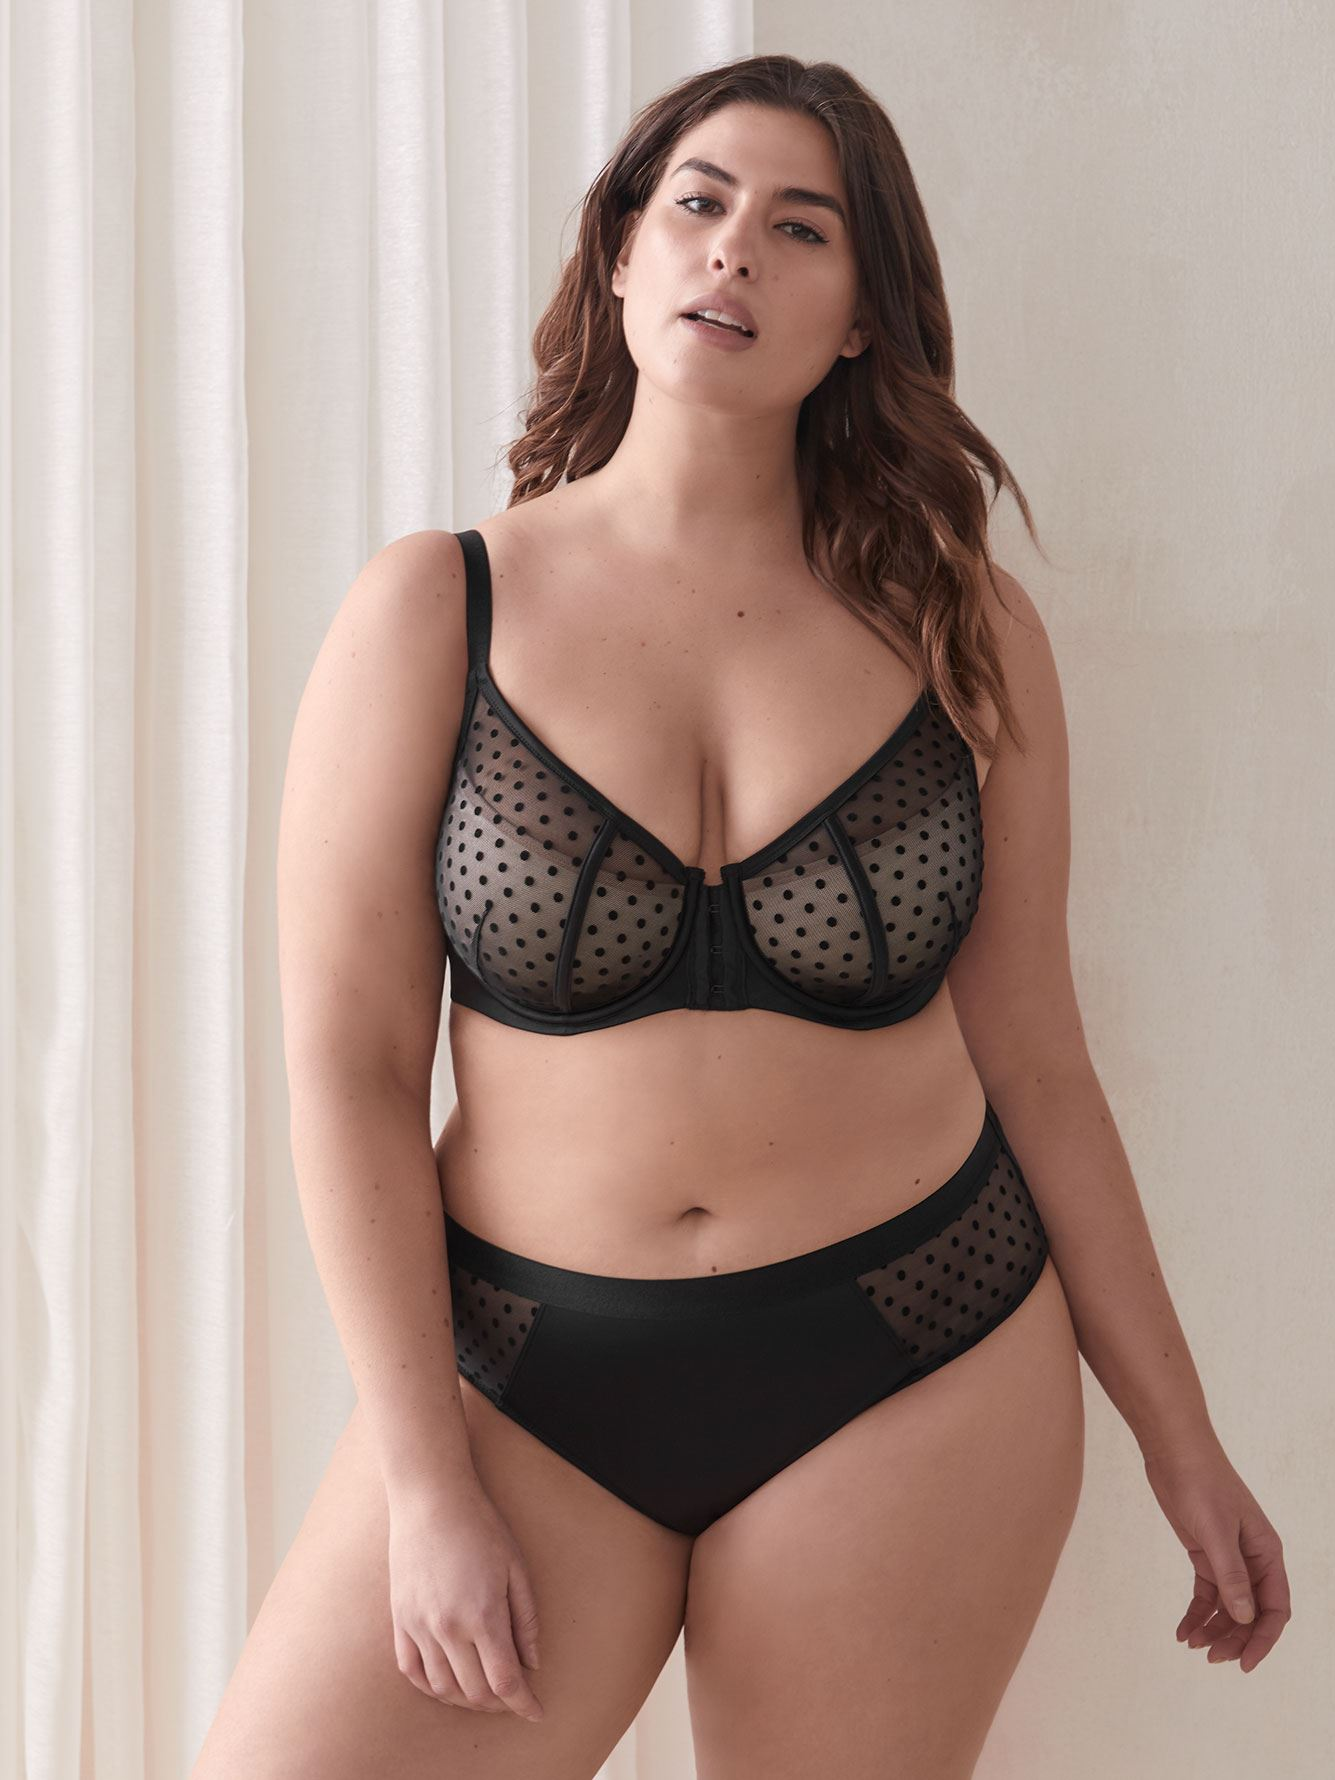 Soutien-gorge à demi-bonnet, fermeture avant - Ashley Graham